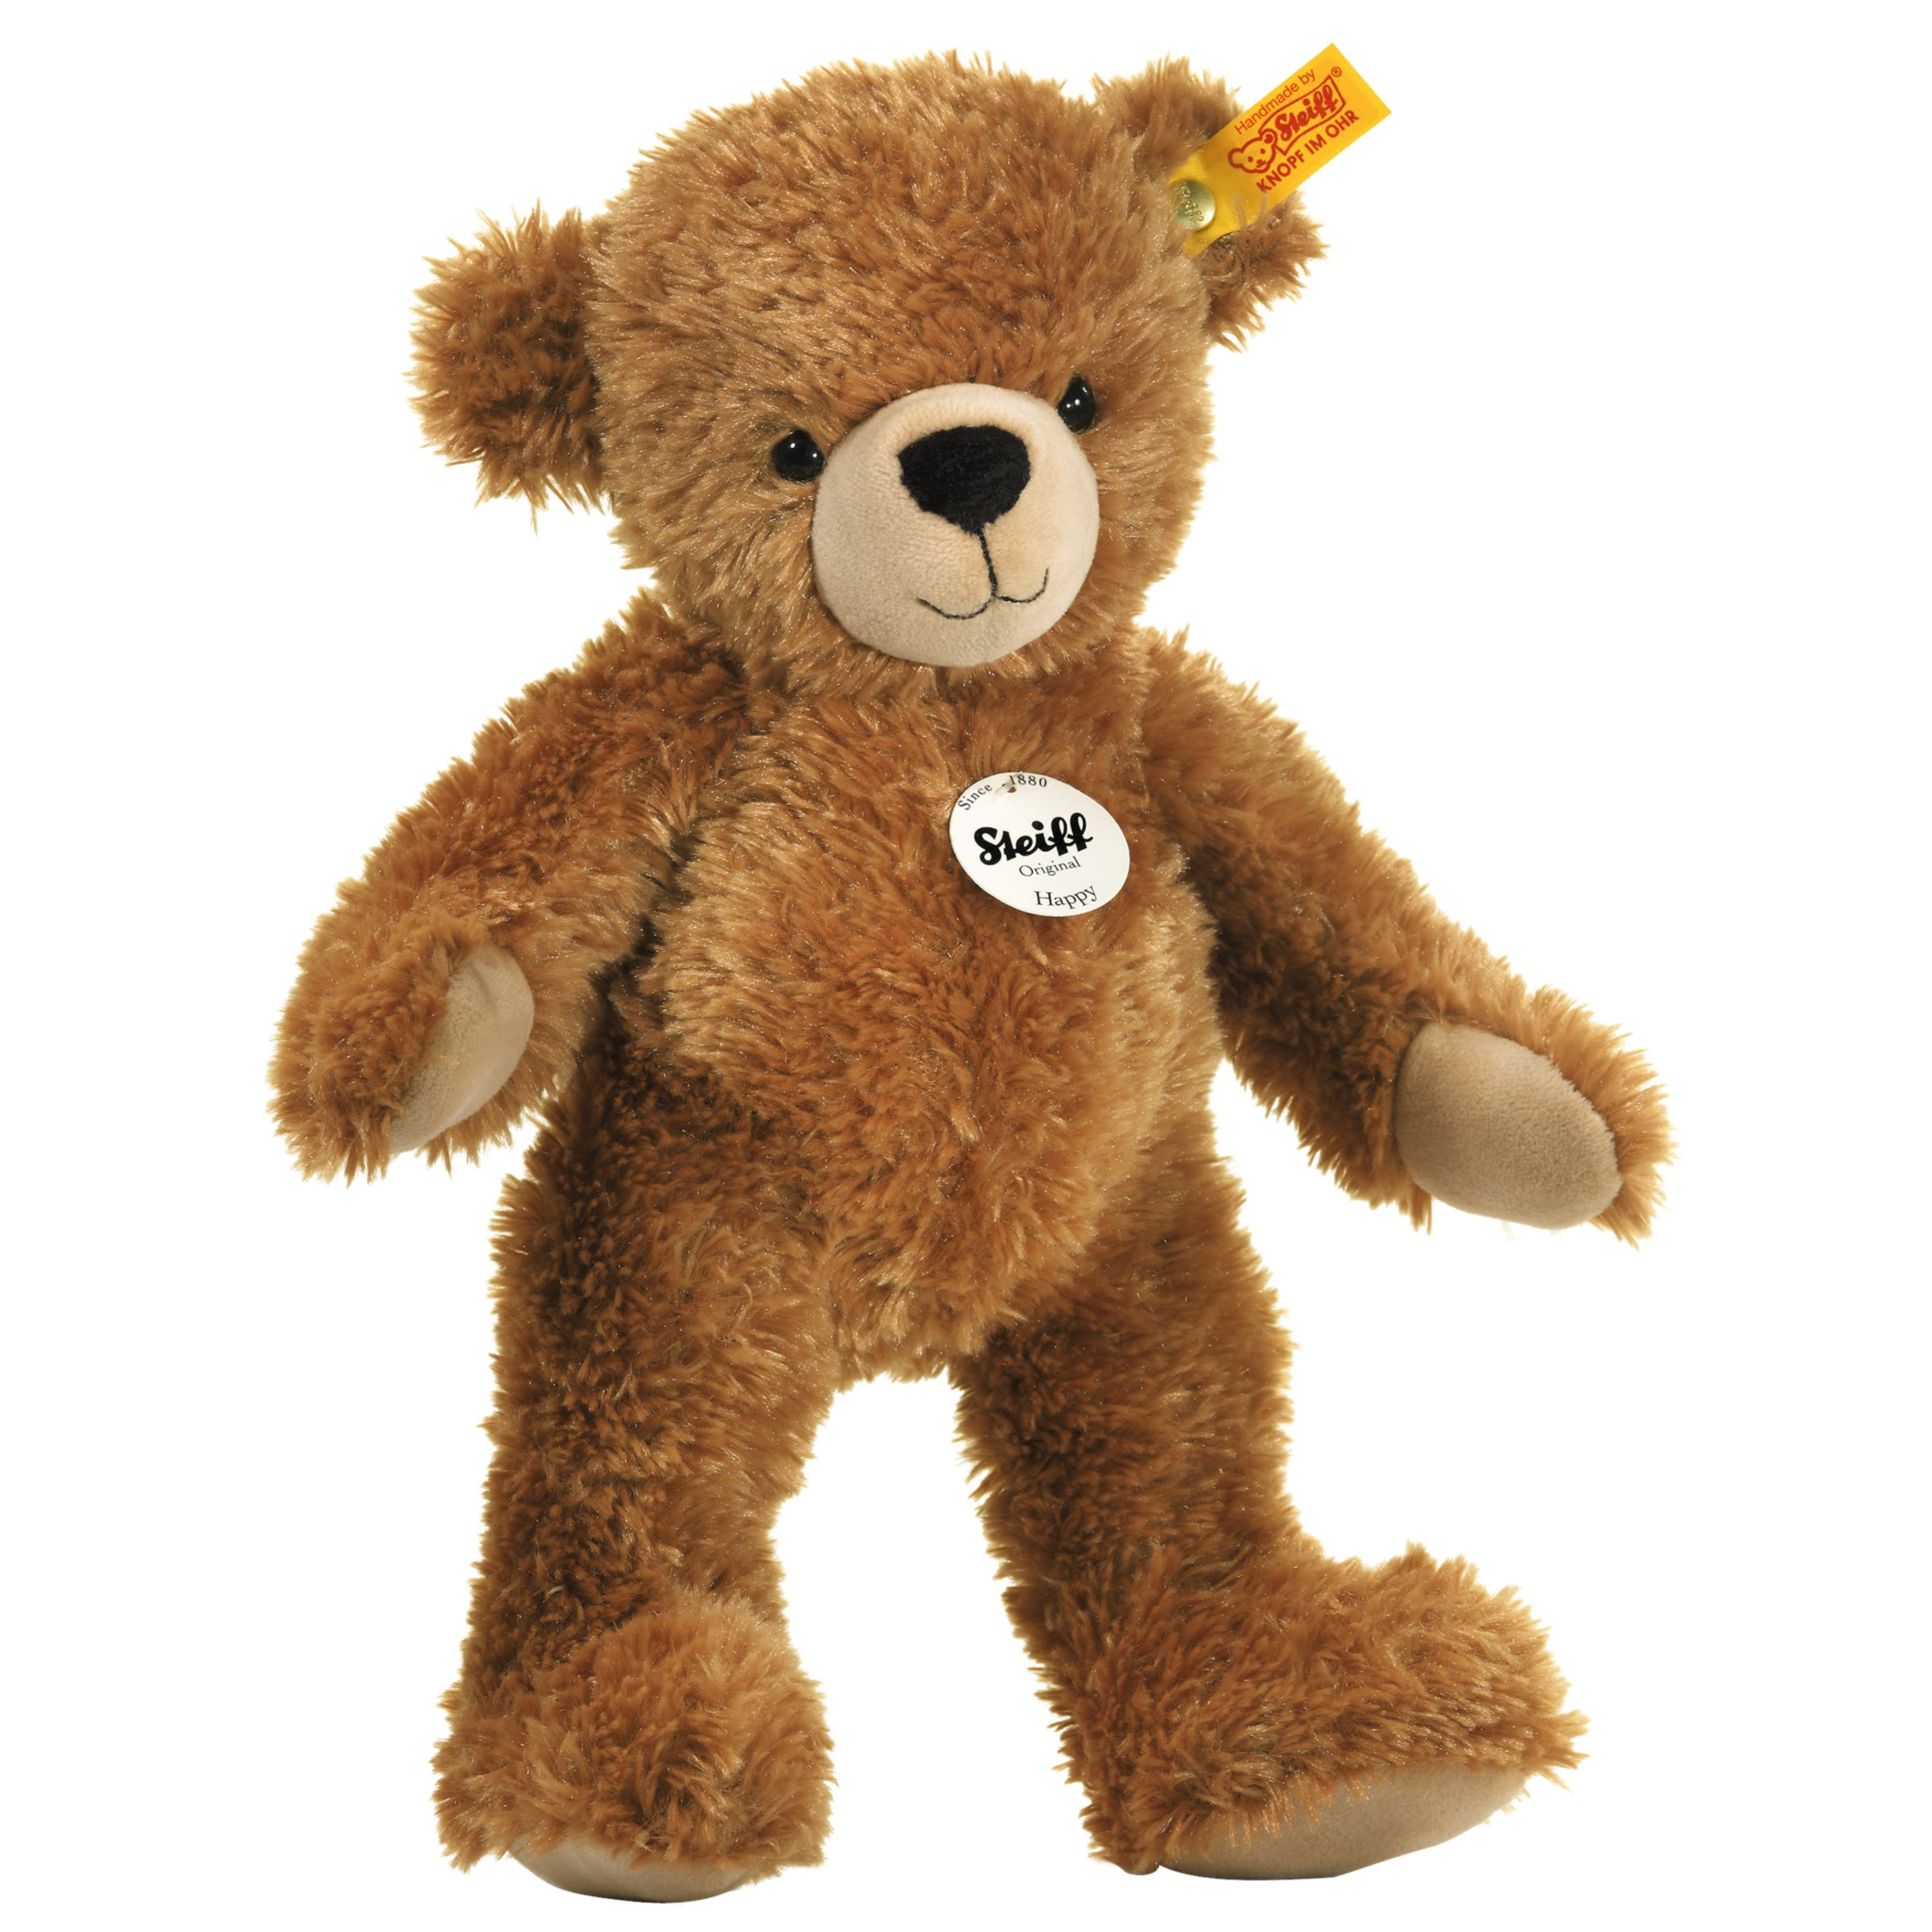 Steiff Steiff Happy Teddy Bear Soft Toy